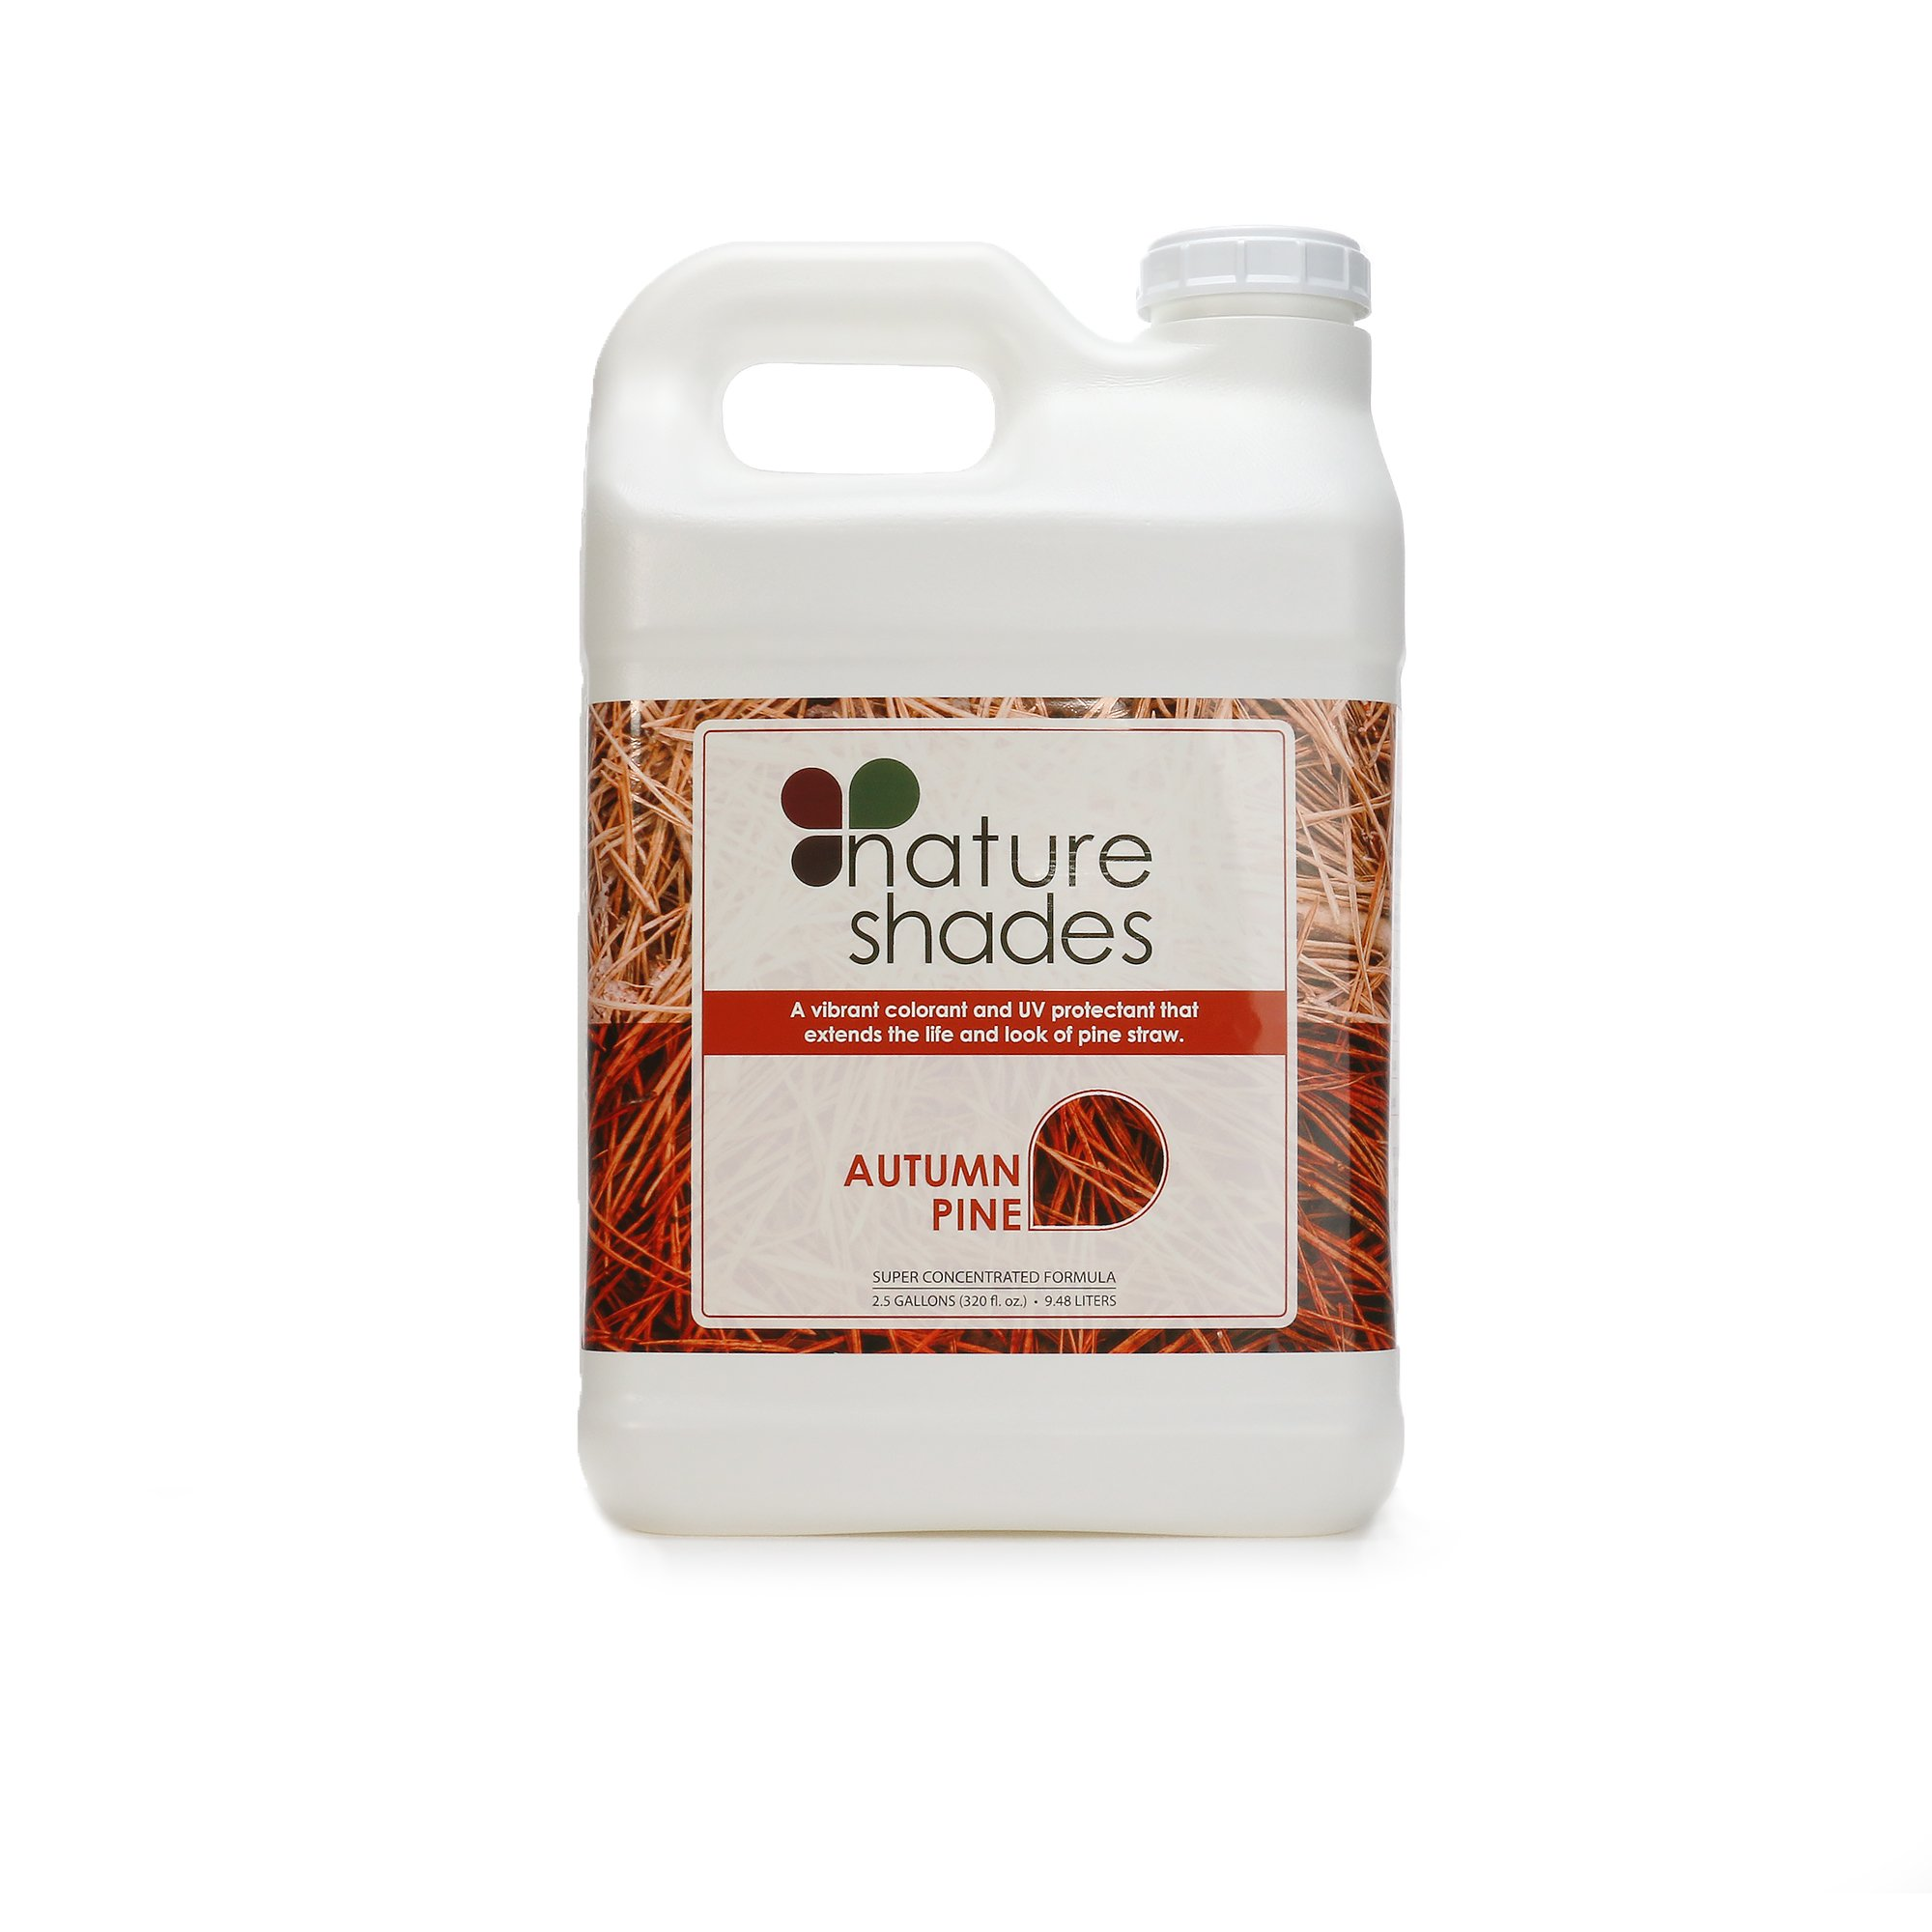 Nature Shades 2.5 Gallon Pine Straw Colorant Southern Pine Autumn Pine Pigment Dye (Autumn Pine)